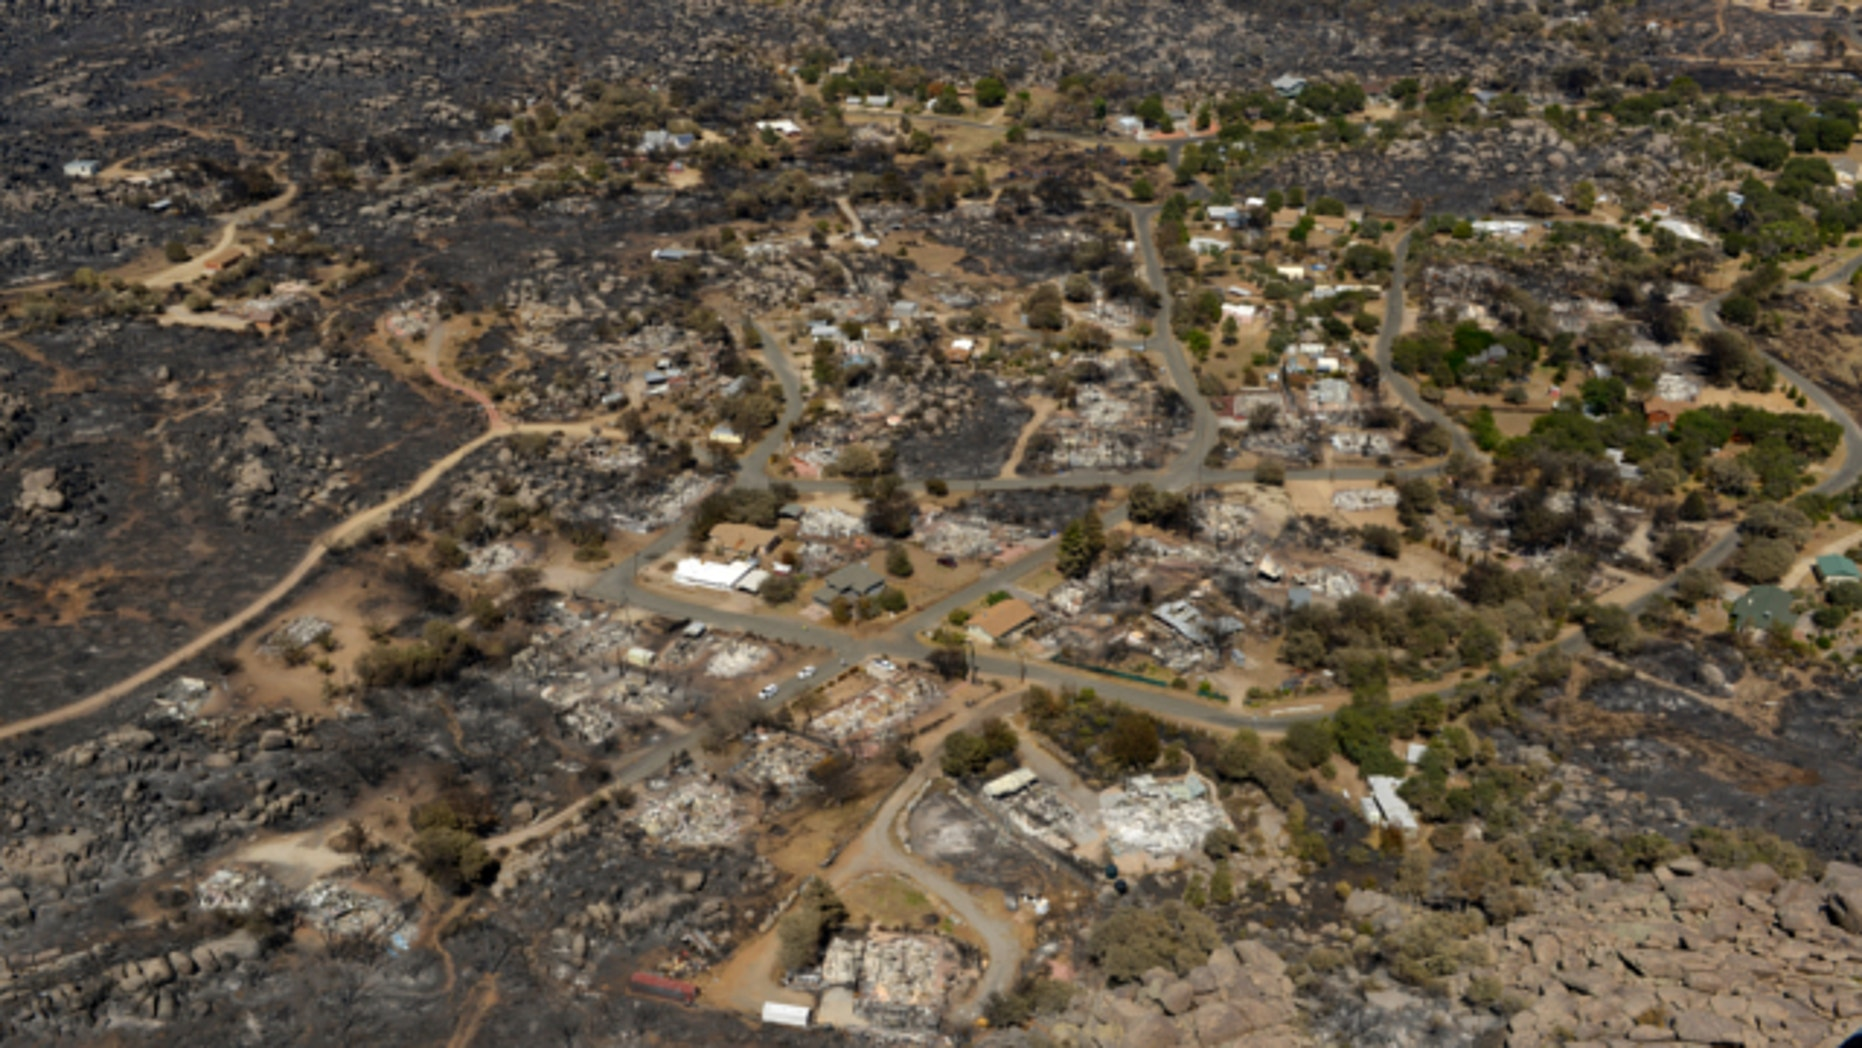 July 7, 2013: Several homes are seen destroyed by fire in Yarnell, Ariz.